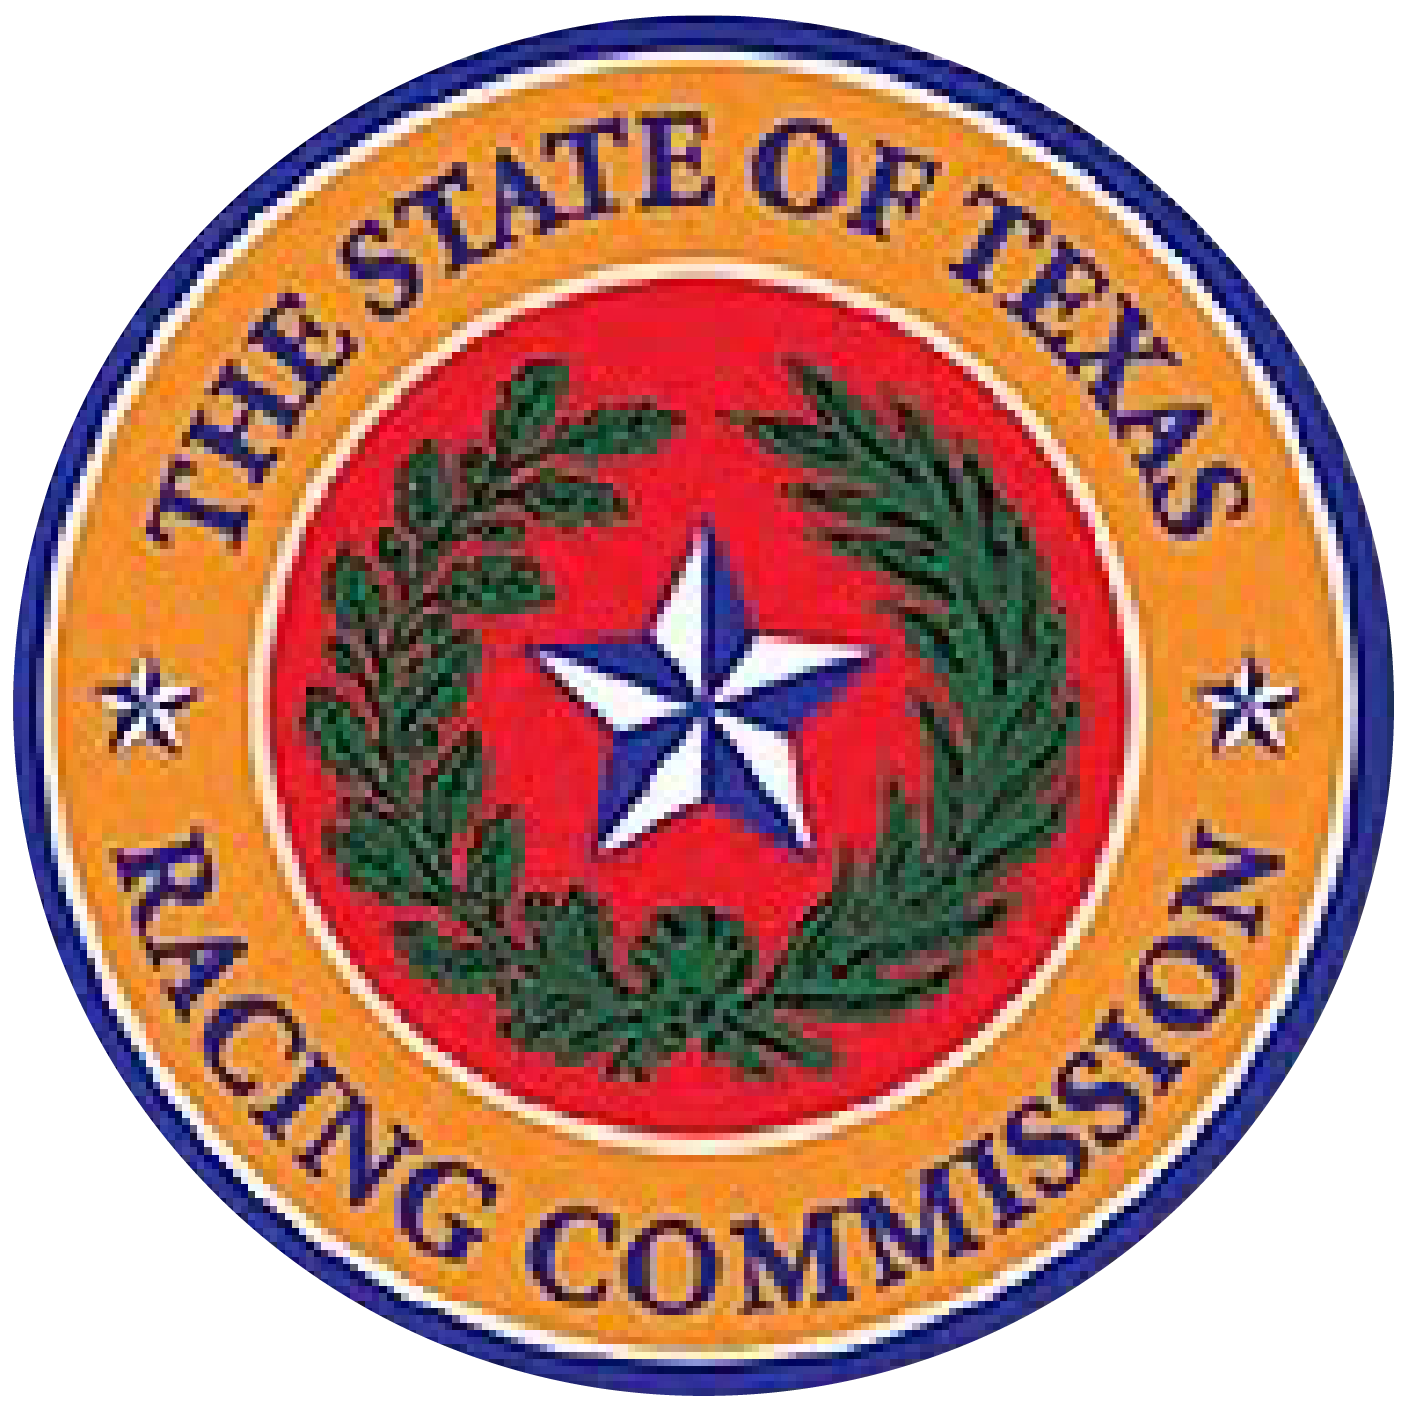 The State of Texas Racing Commission